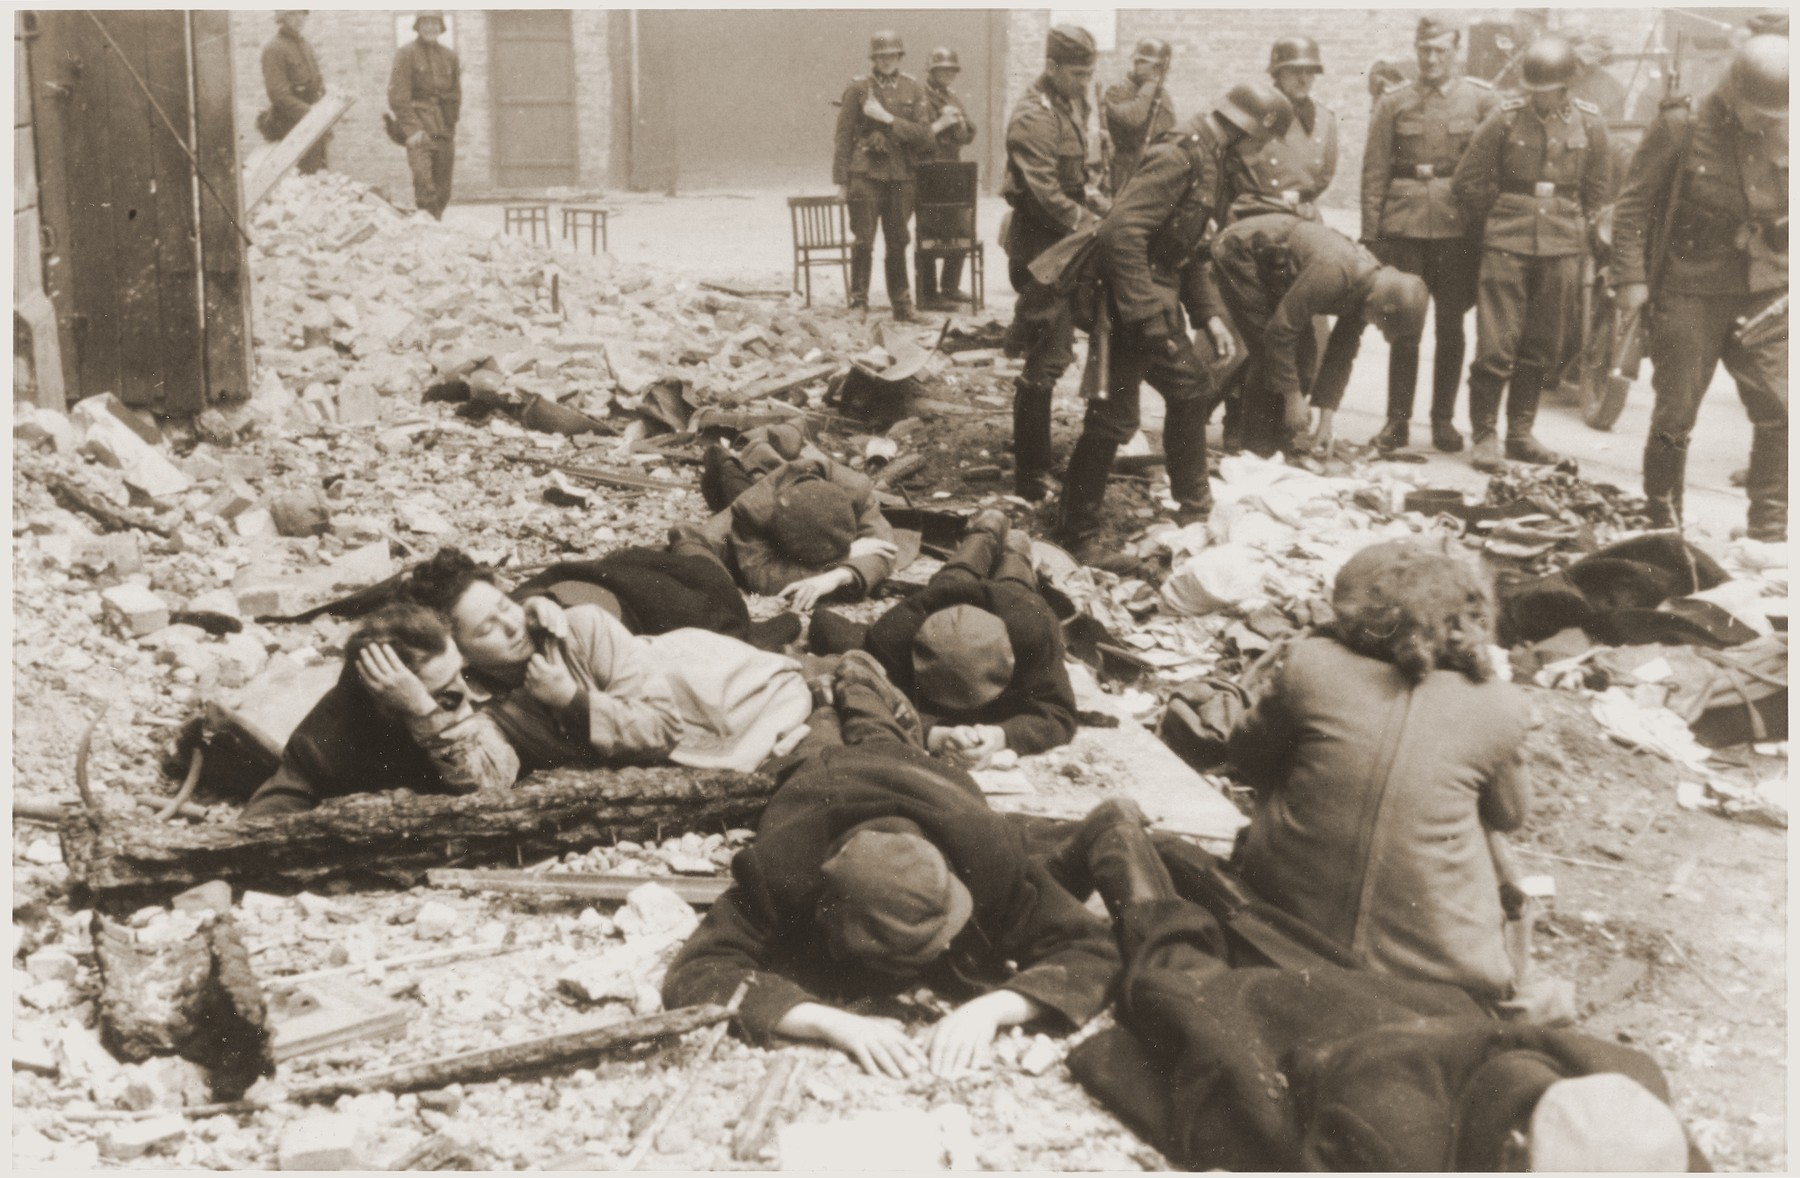 """SS troops search through scattered personal belongings as a small number of Jewish resistance fighters lie on the rubble nearby.  The original German caption reads: """"Just pulled from a bunker."""""""